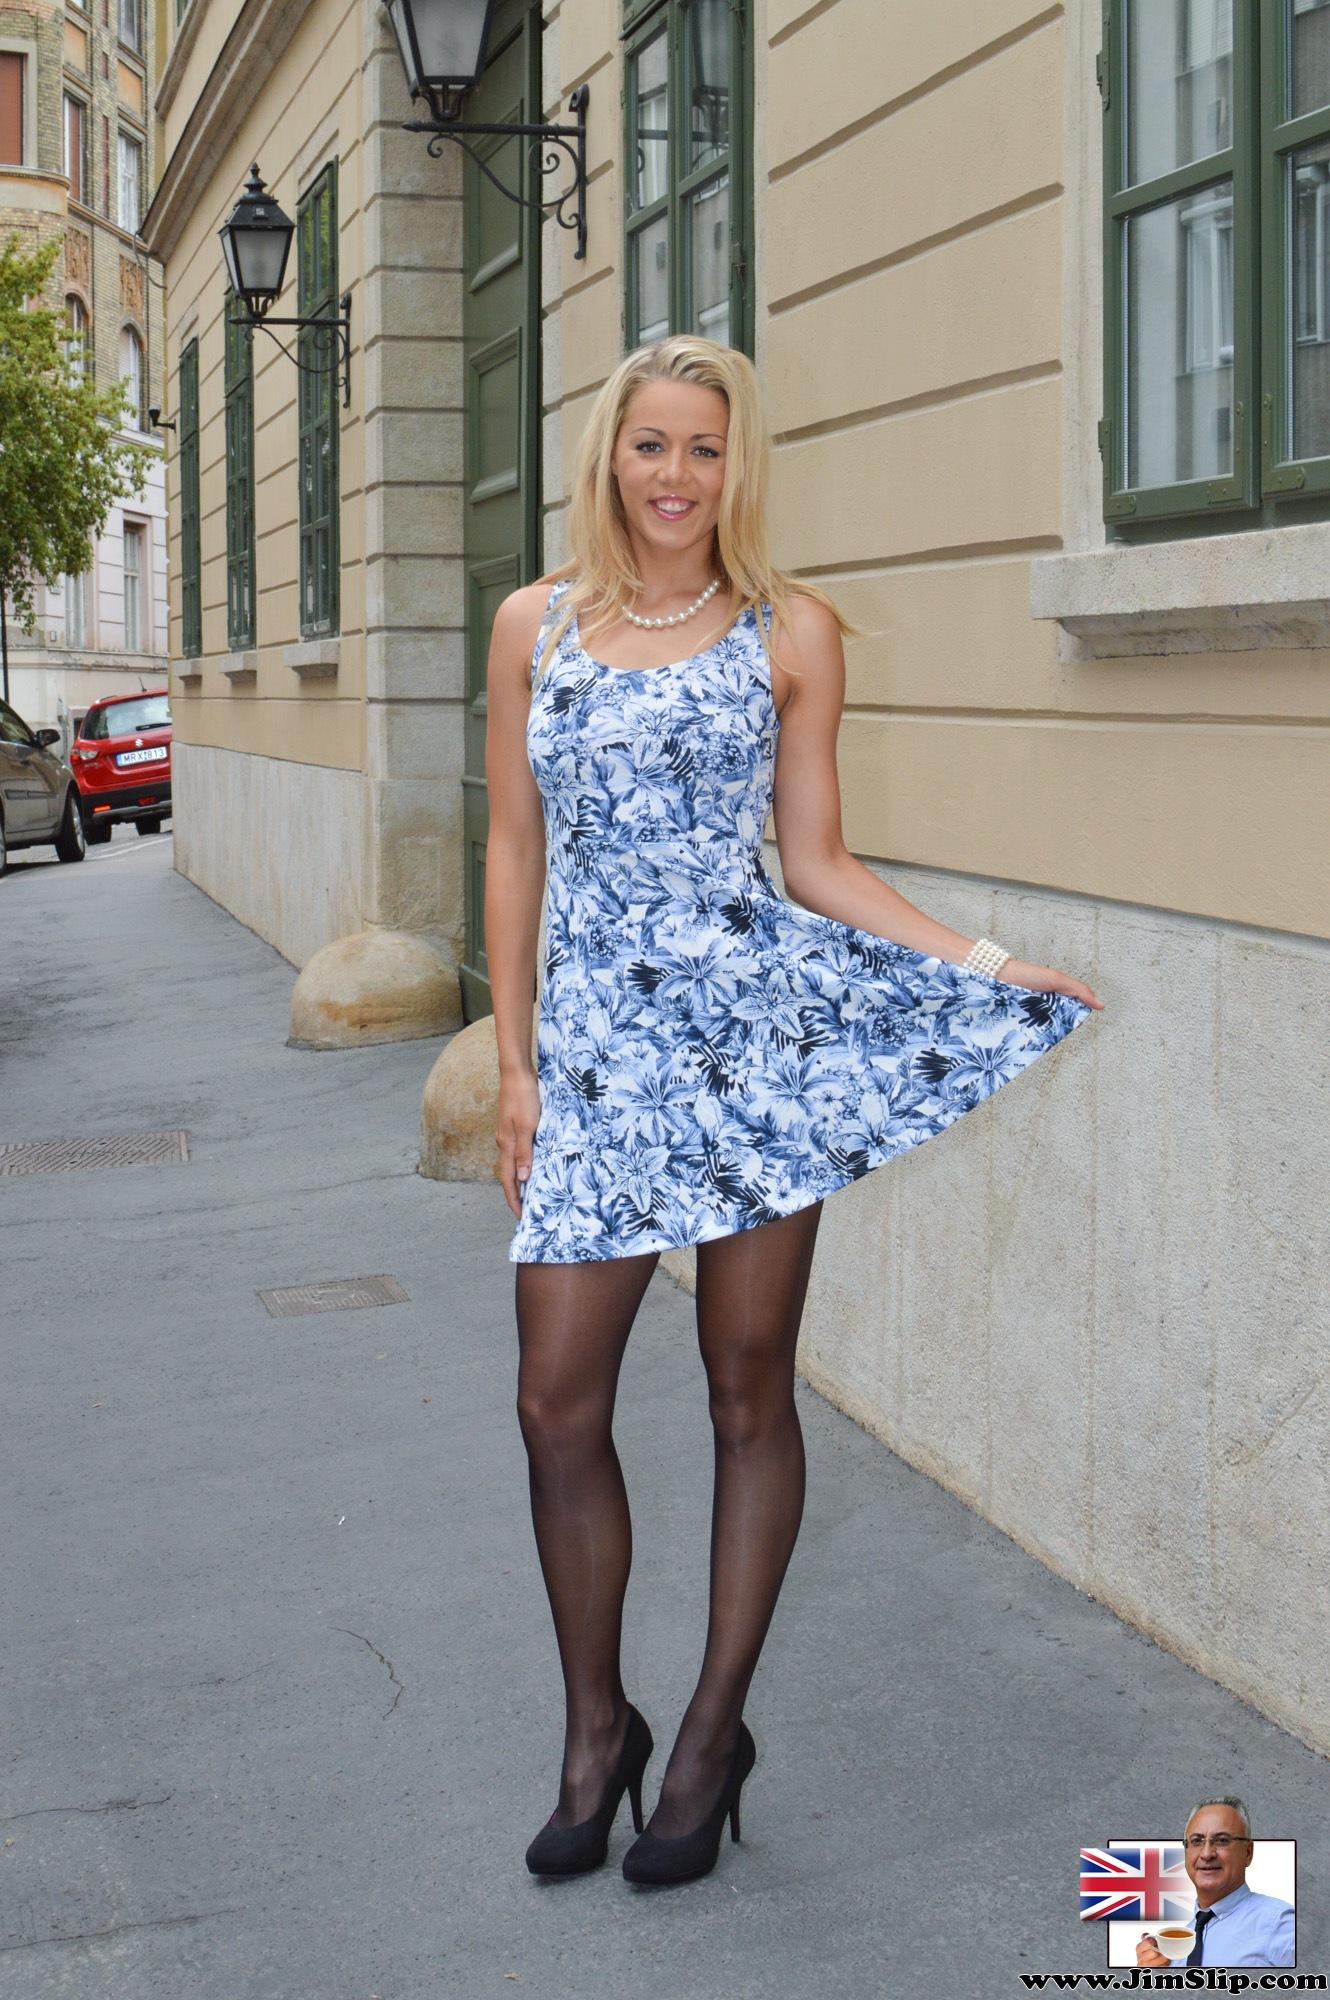 Beauty Christen in a dress with no panties on